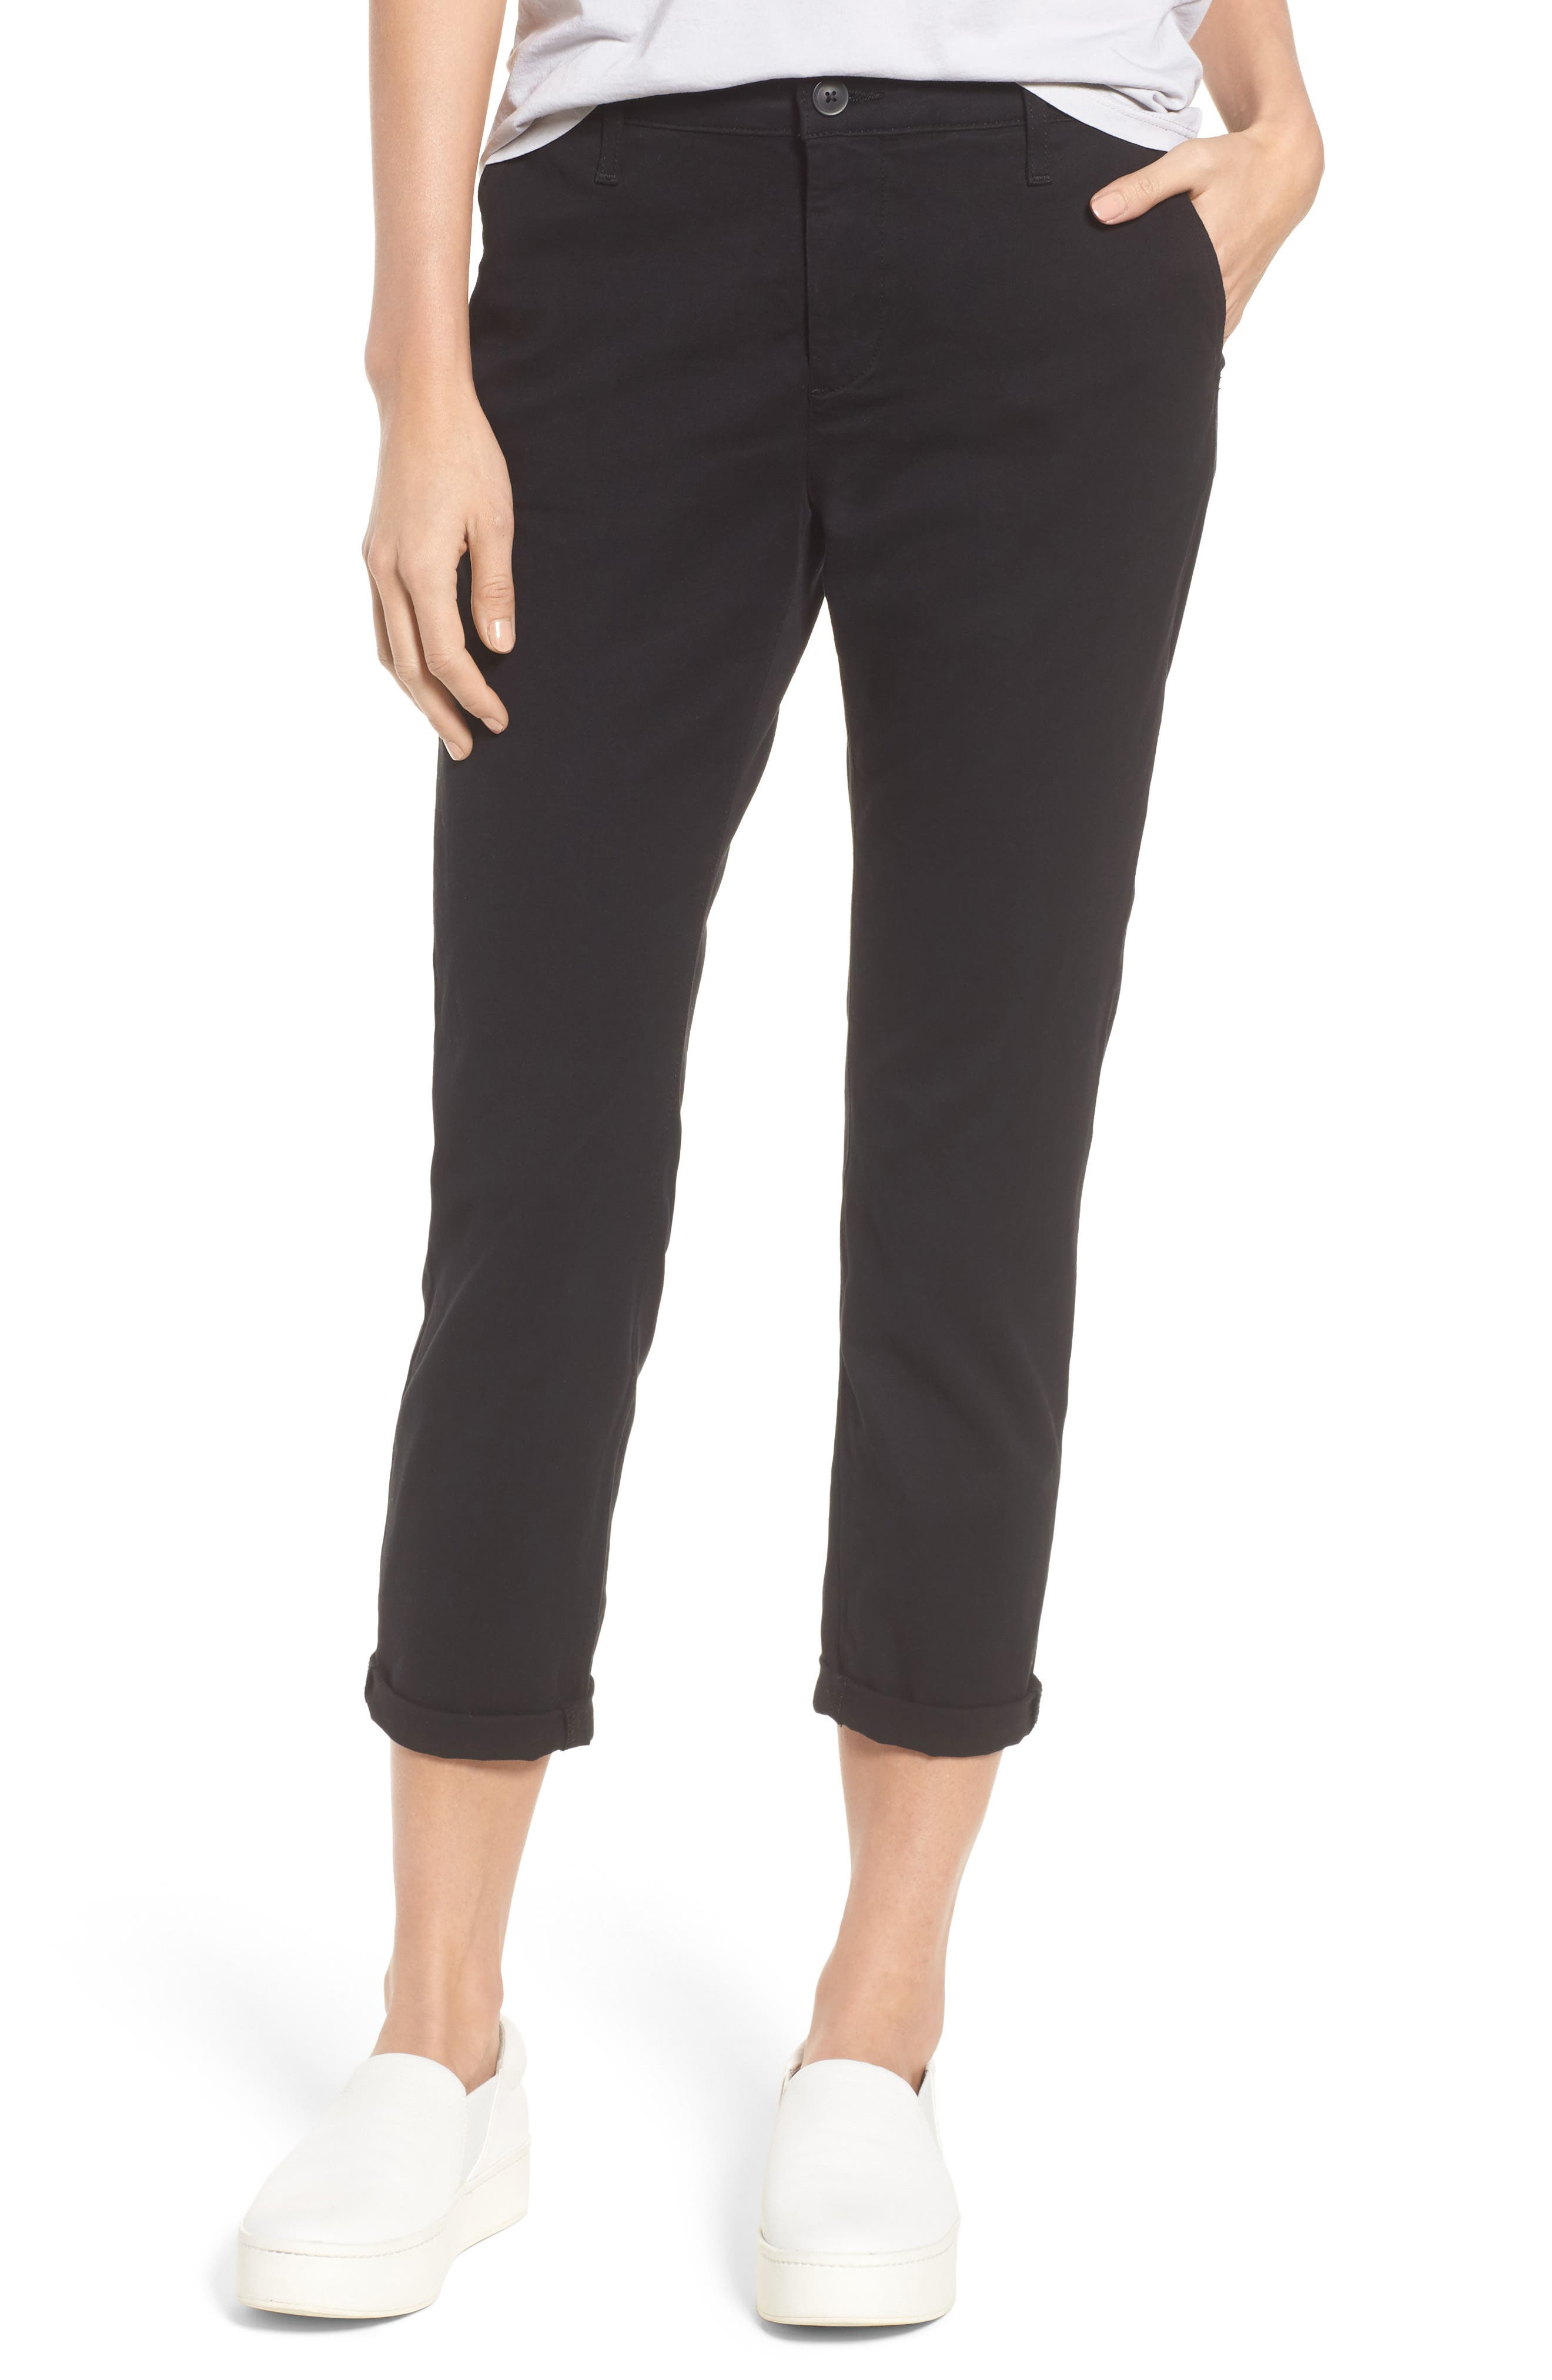 Caden Crop Twill Trousers,                             Main thumbnail 1, color,                             010